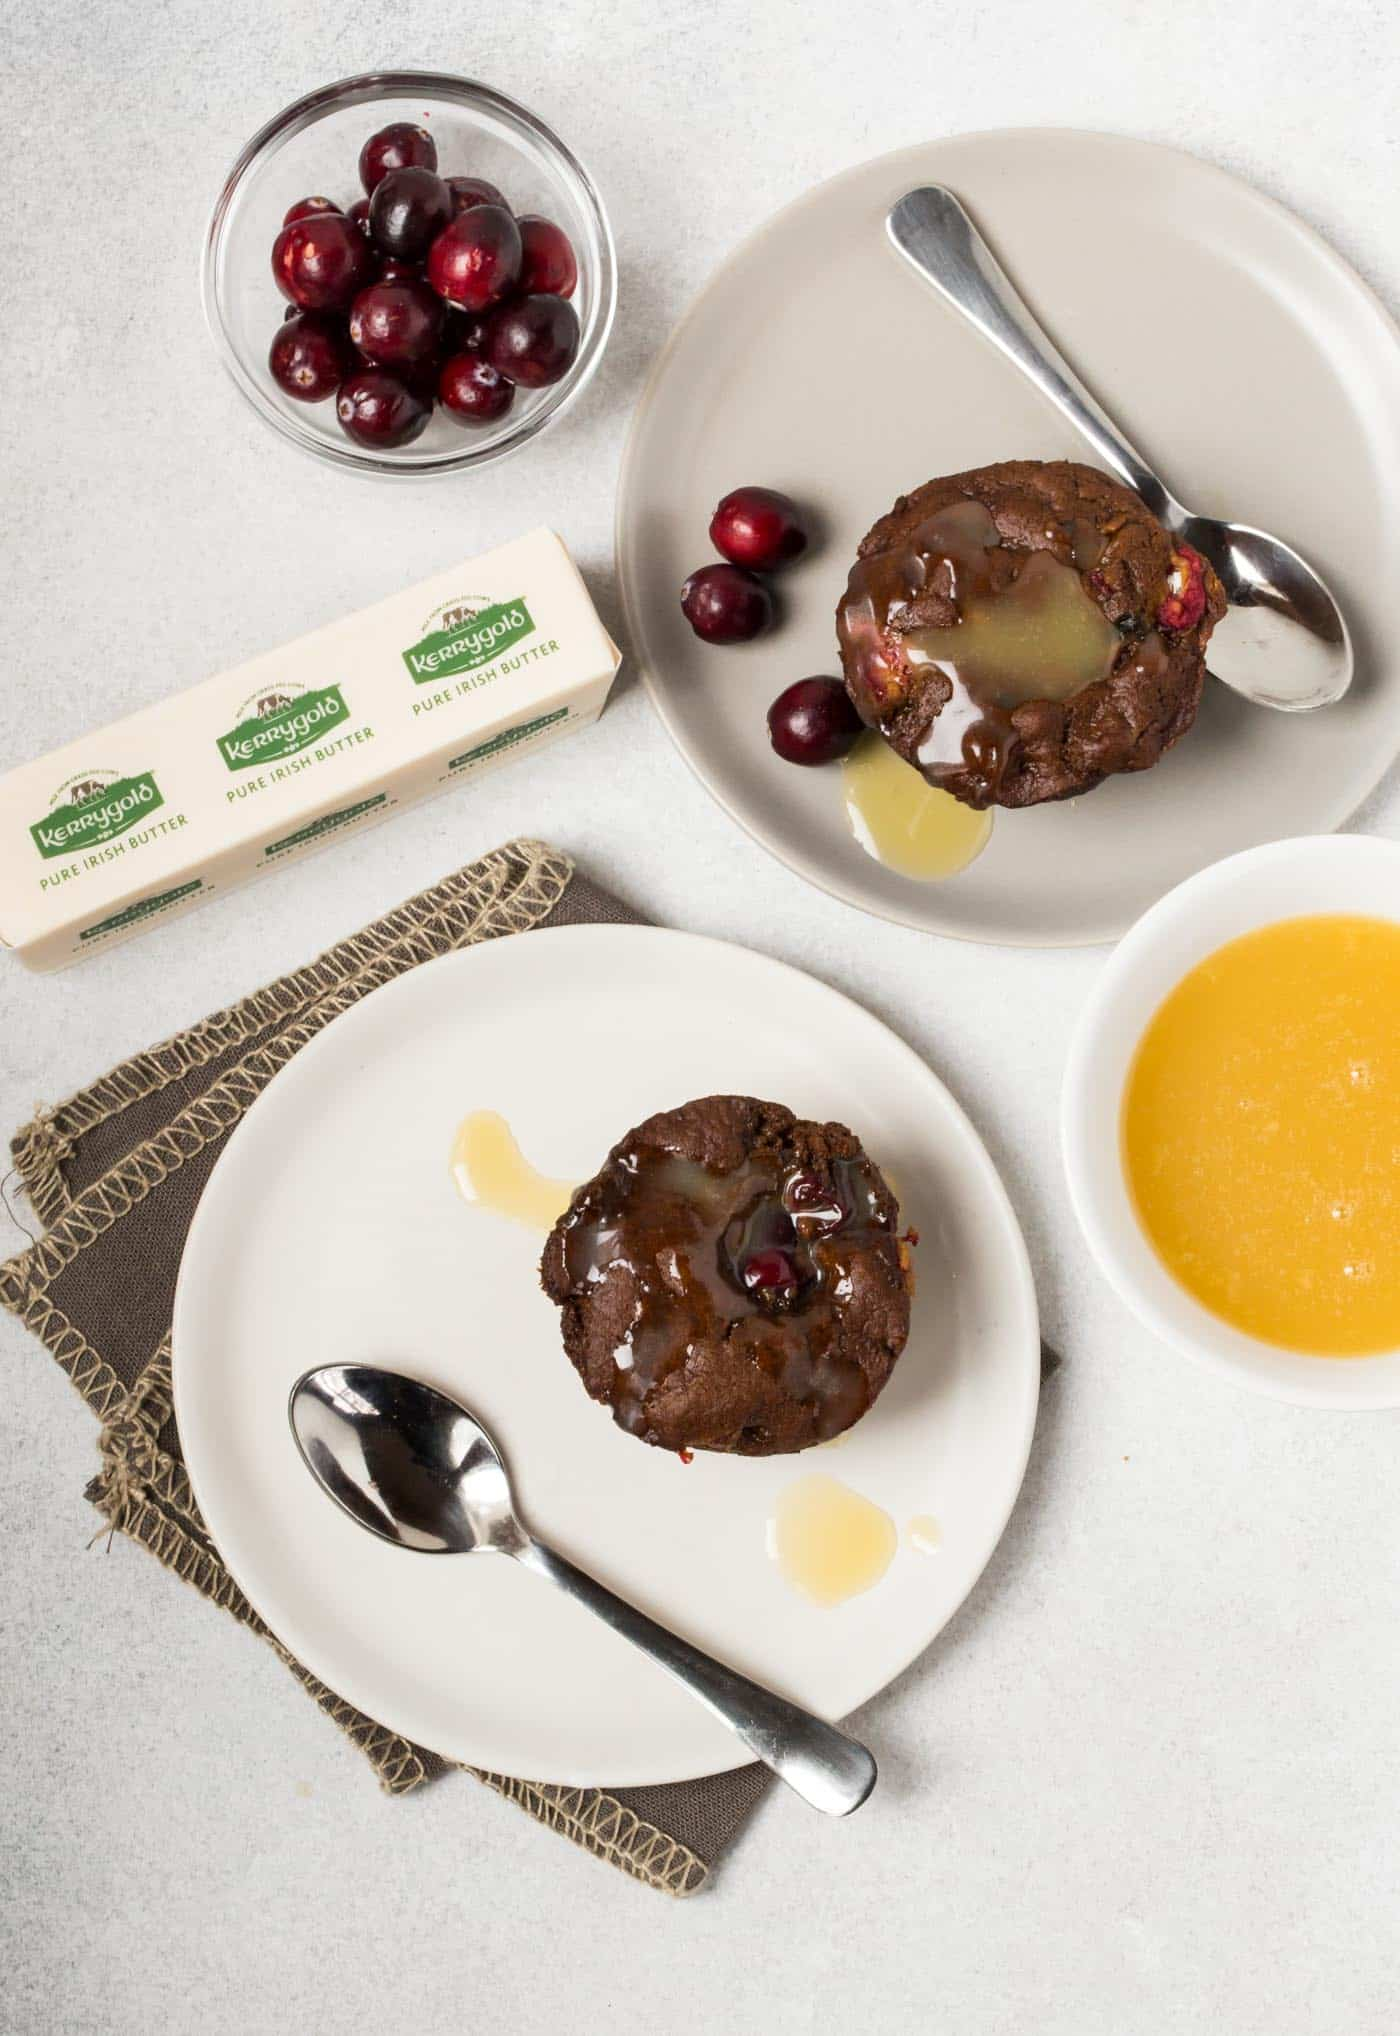 Cranberry Puddings with Warm Vanilla Butter Sauce on white plates with spoons.